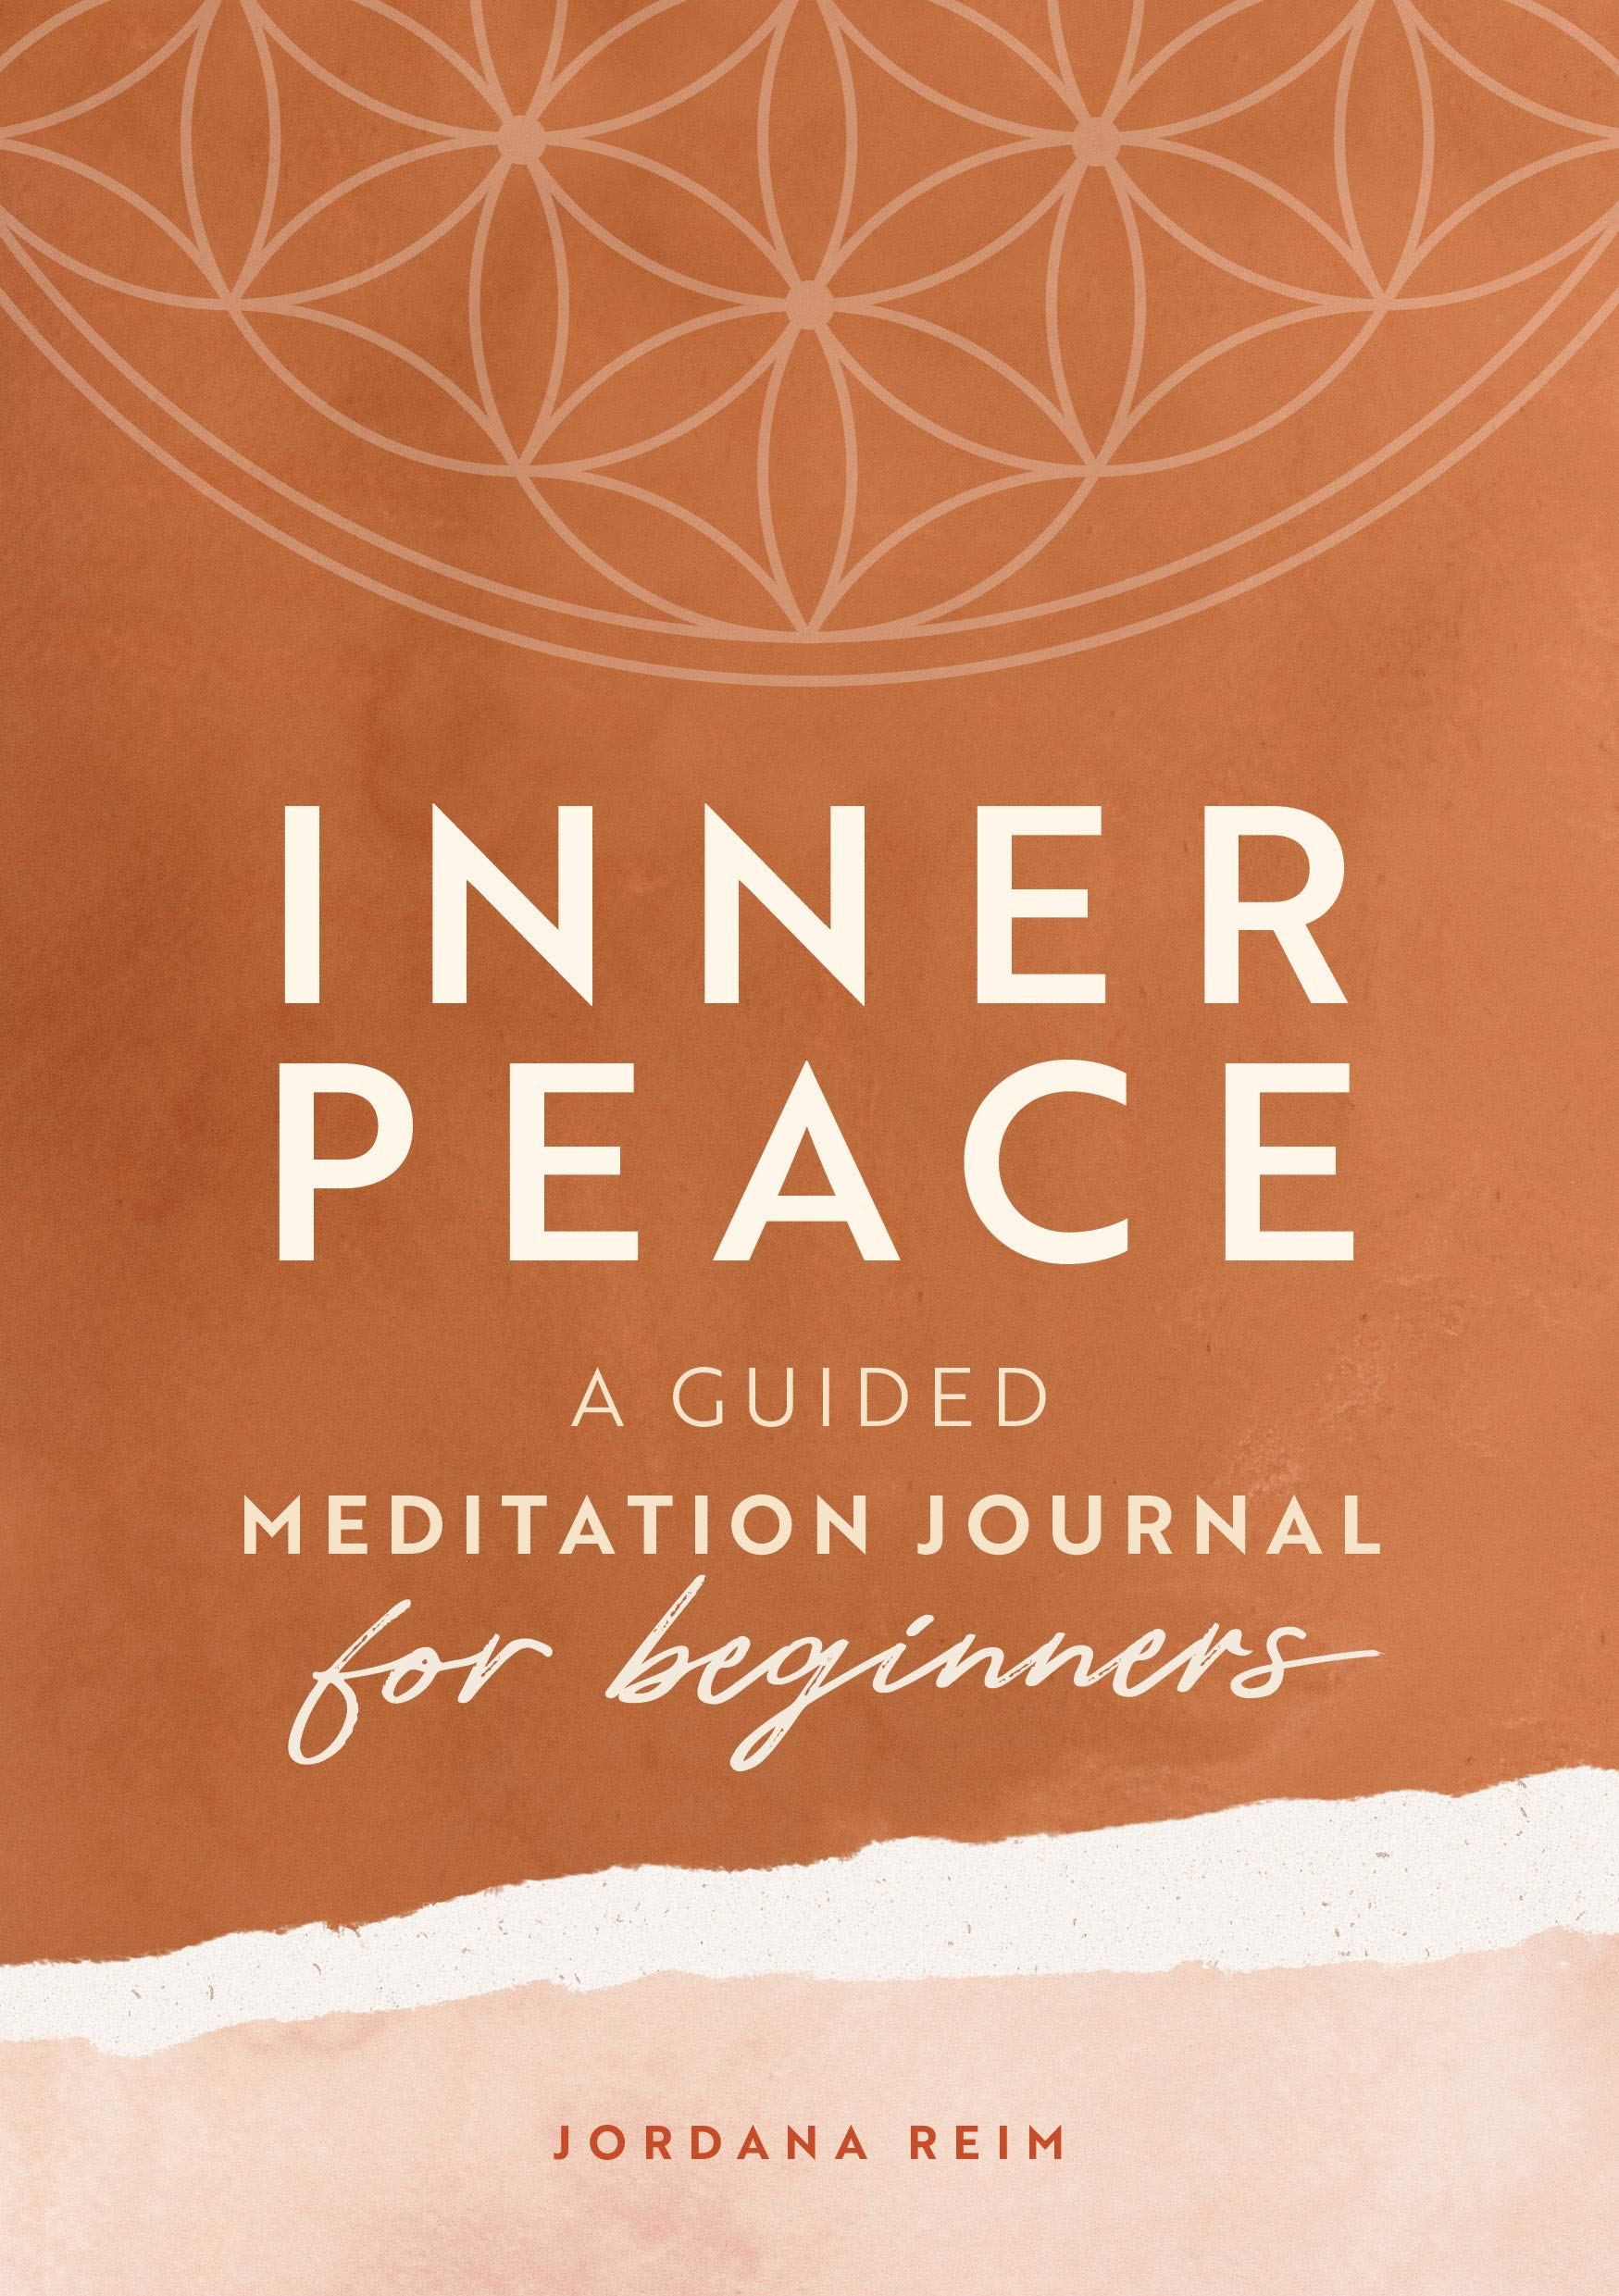 Inner Peace: A Guided Meditation Journal For Beginners